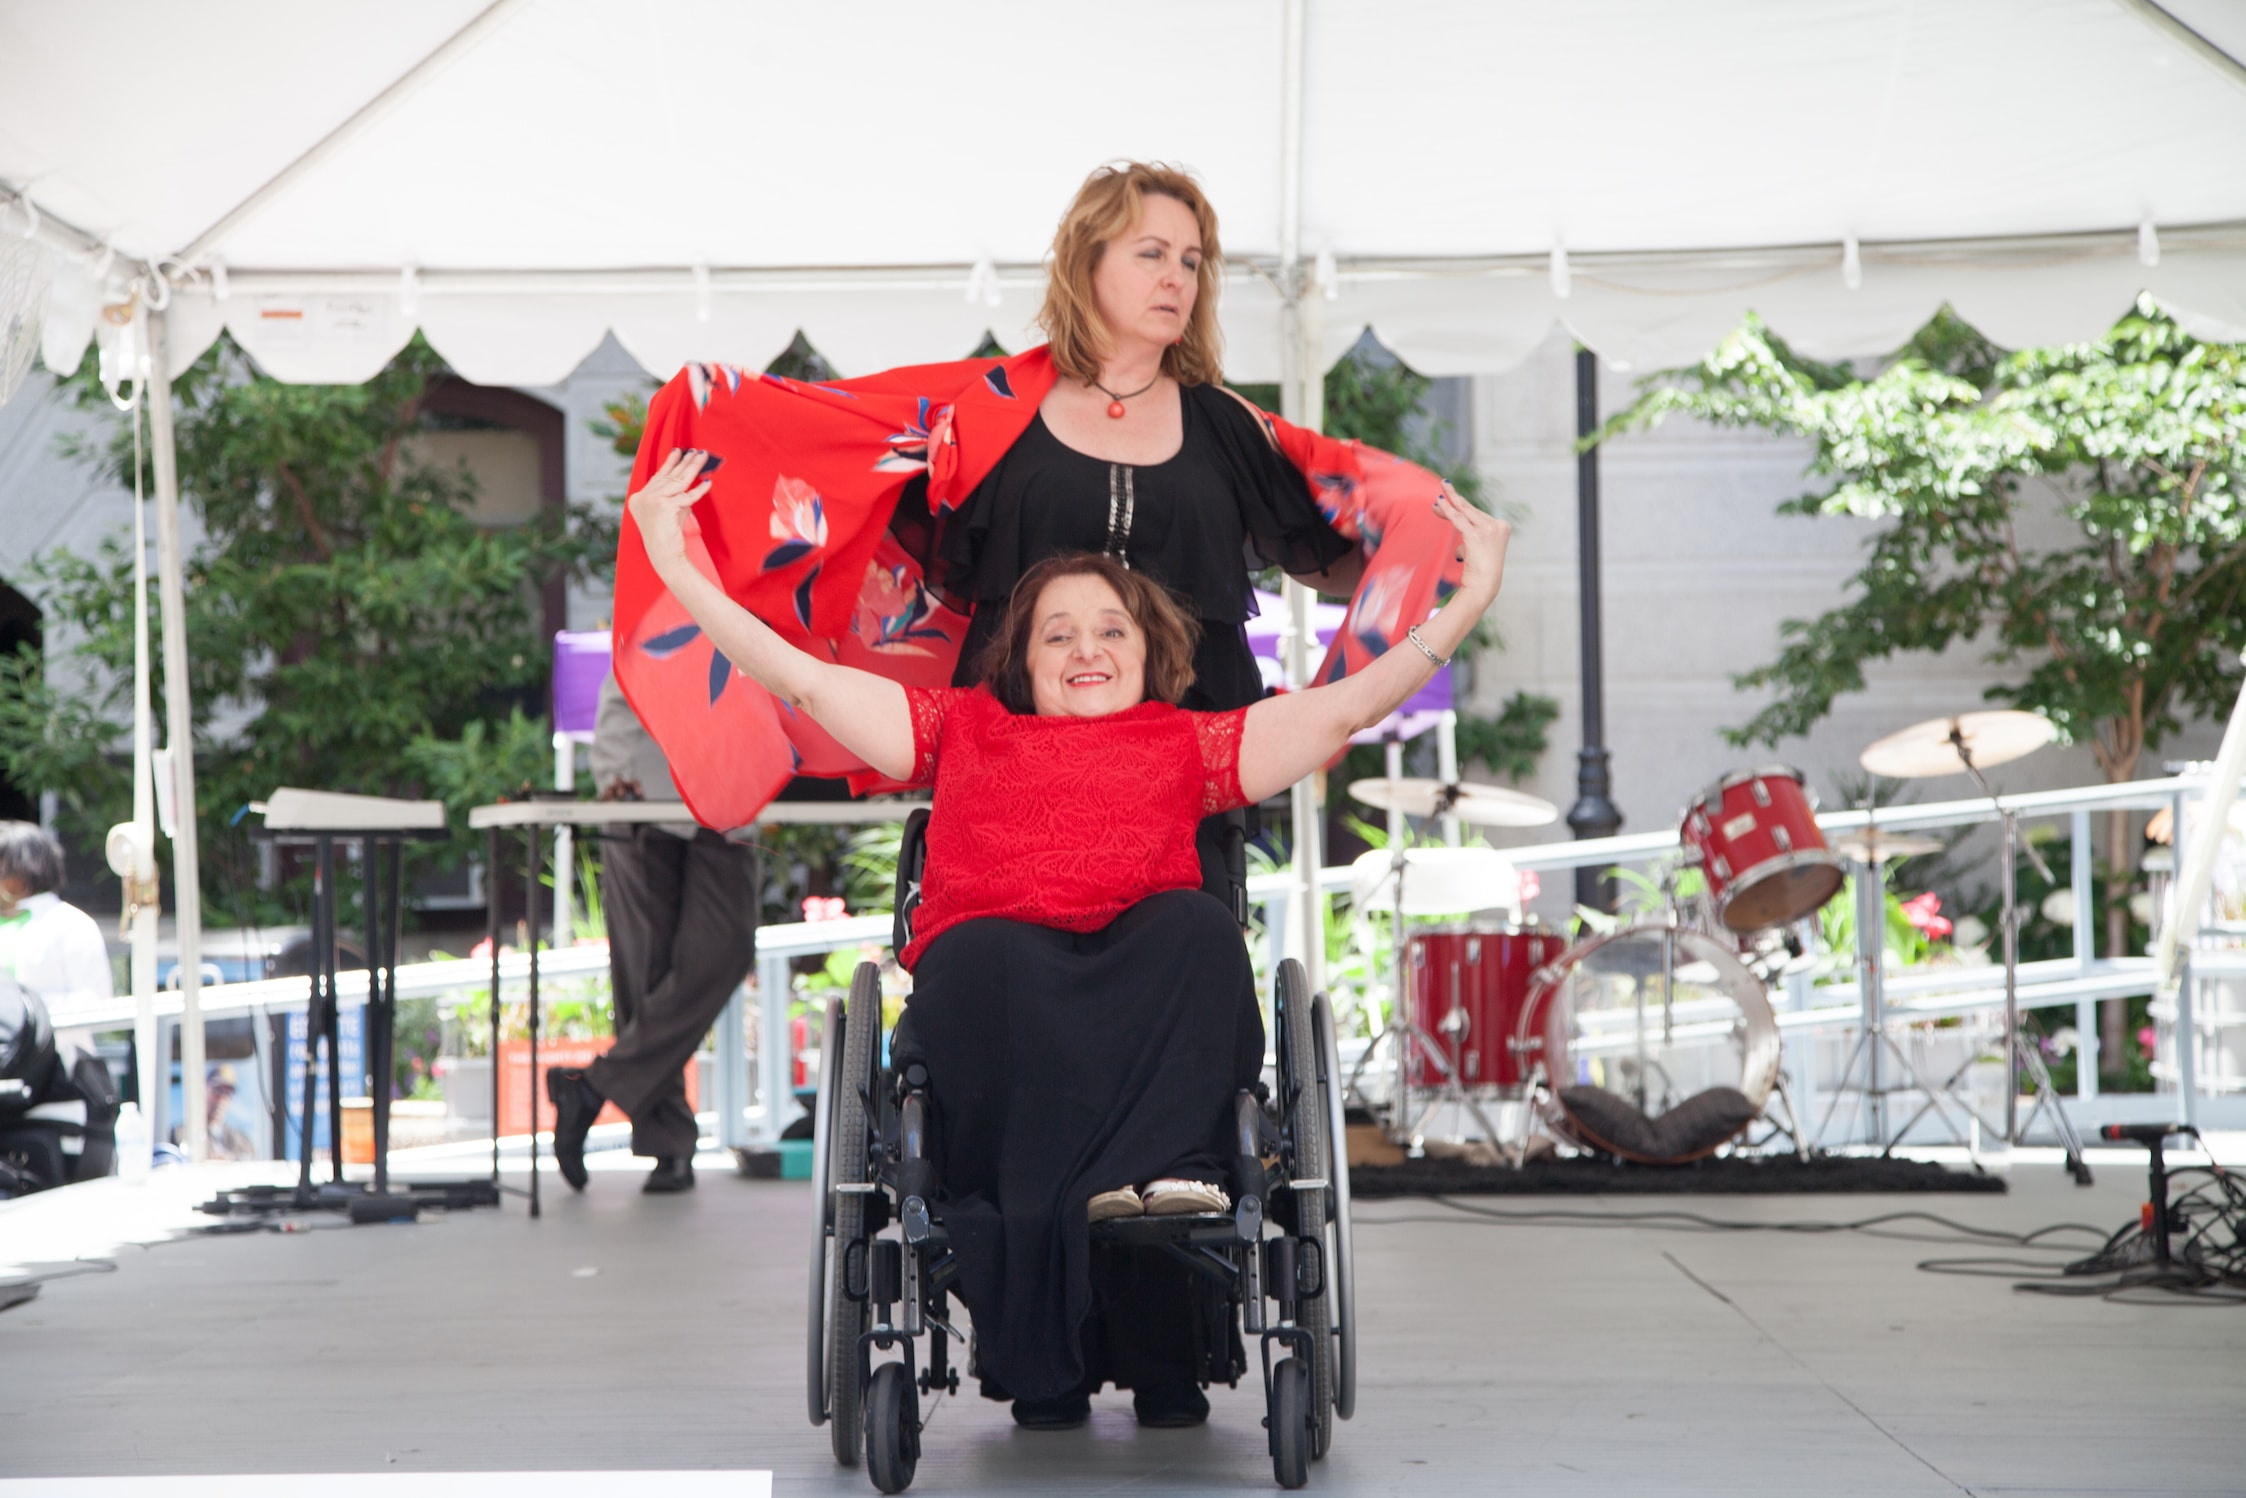 Two women wearing red and black on a stage. One woman is in a wheelchair holding her arms out wide while the other woman does the same while standing behind her.